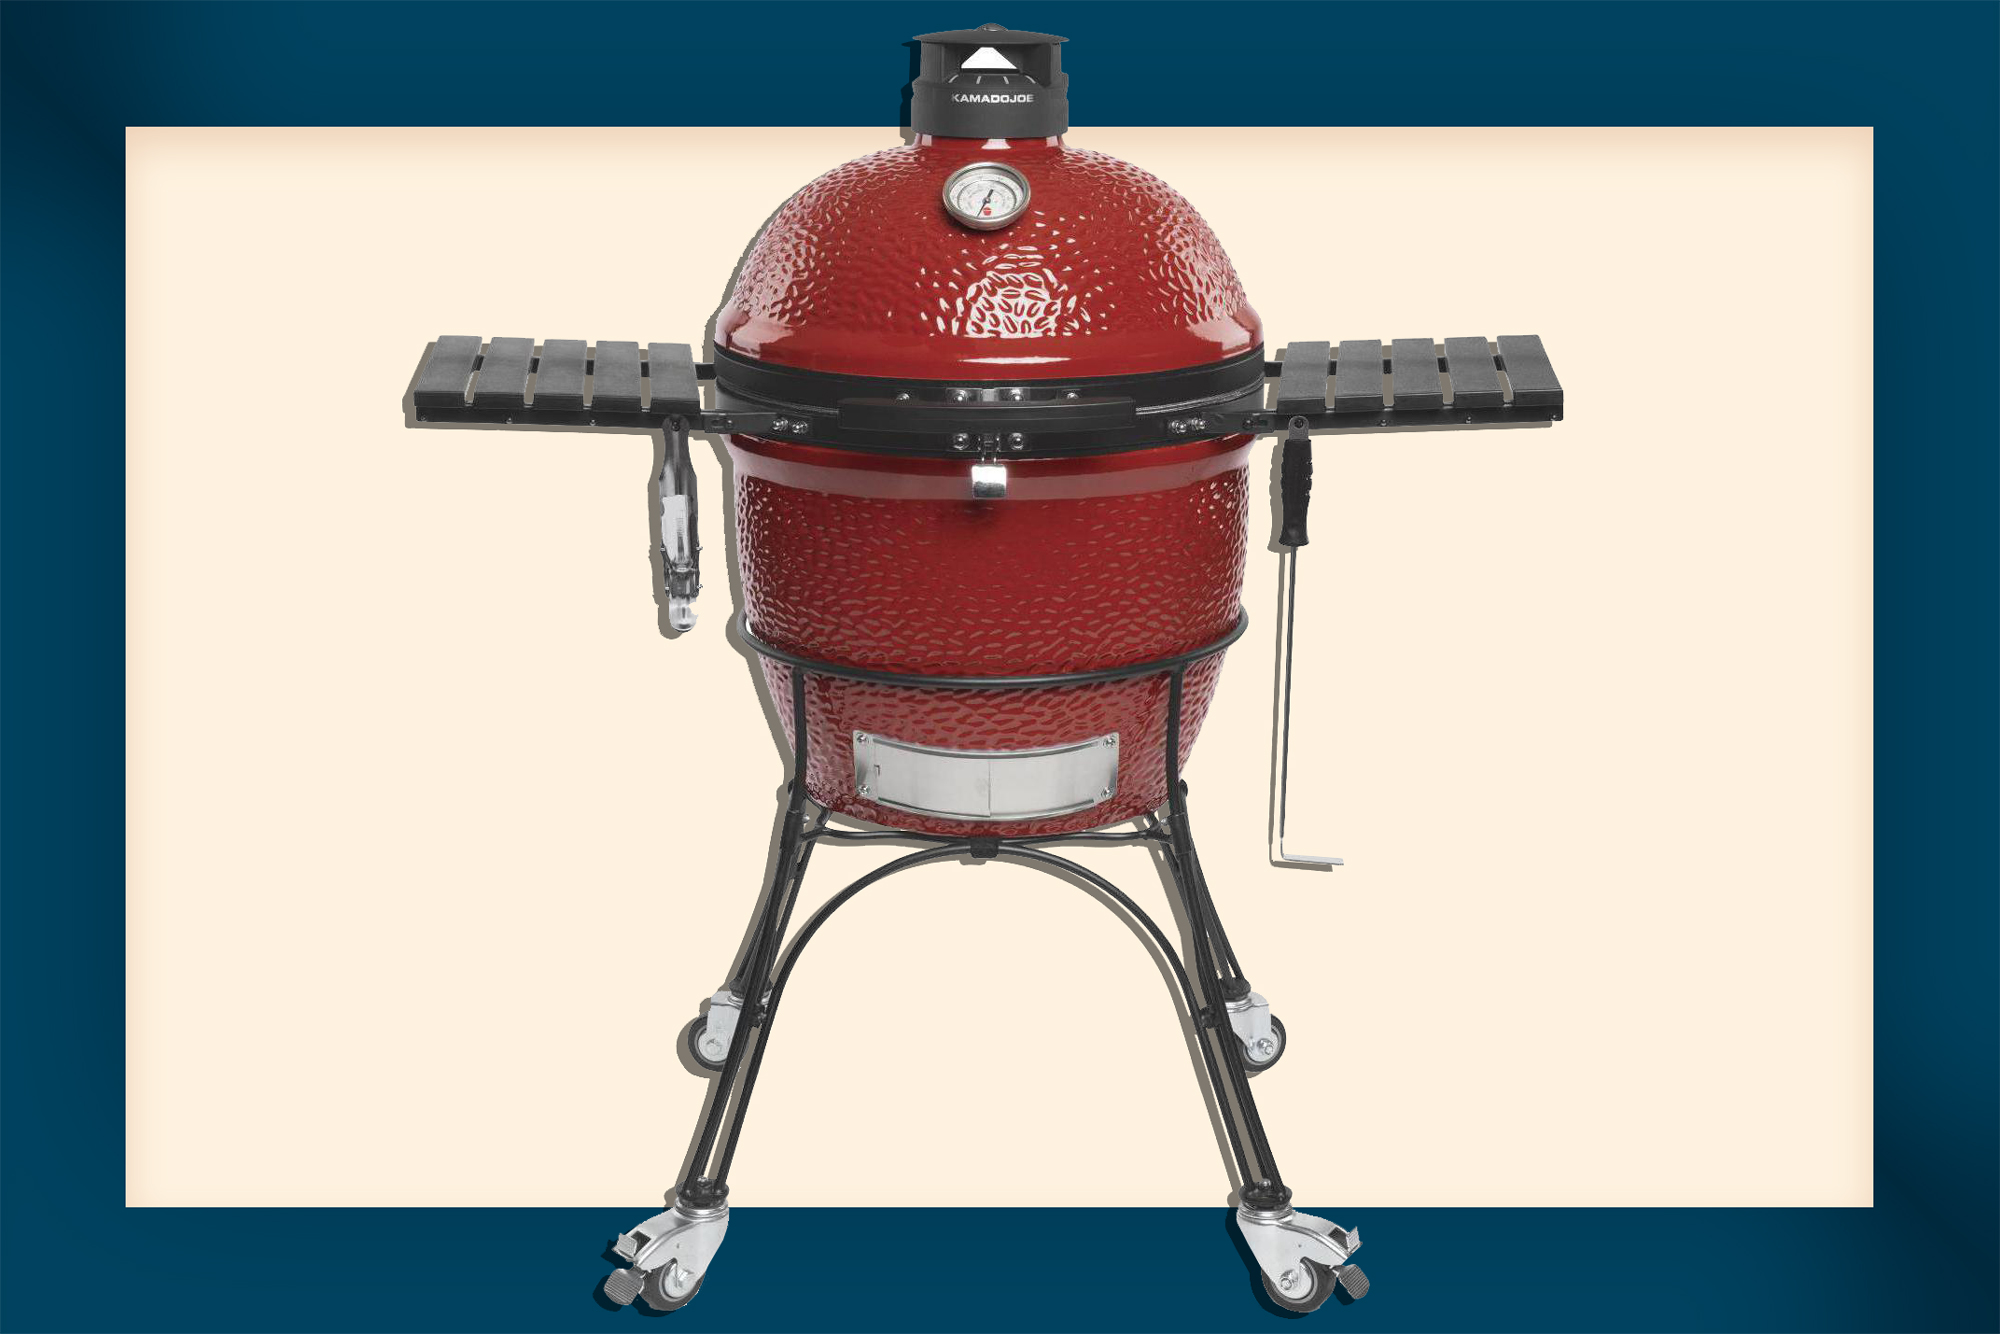 Father's Day Grilling Gifts | Komado Grill